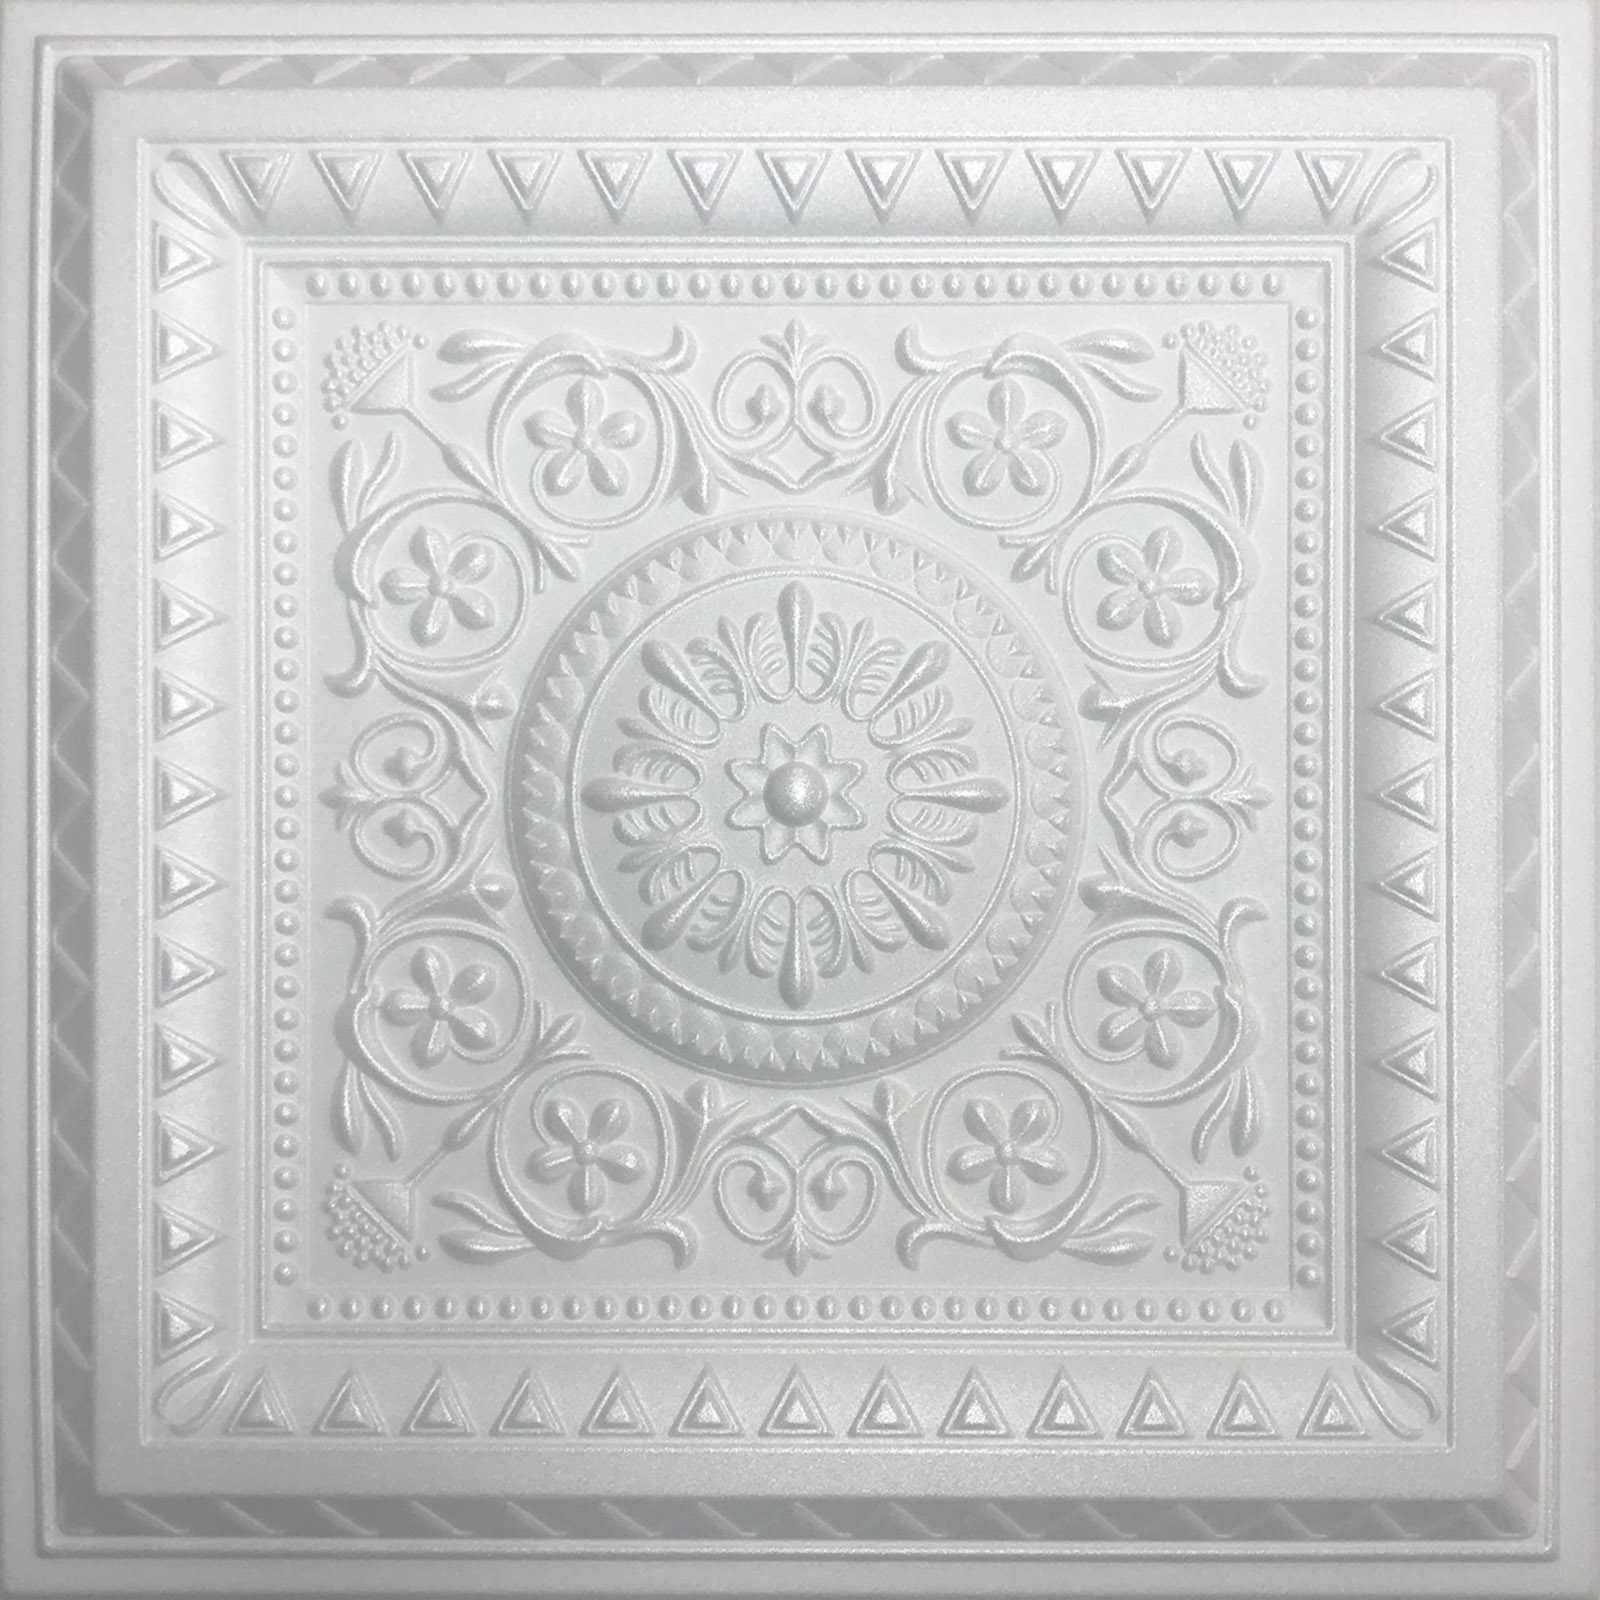 White Styrofoam Ceiling Tile Magic (Package of 8 ceiling tiles)